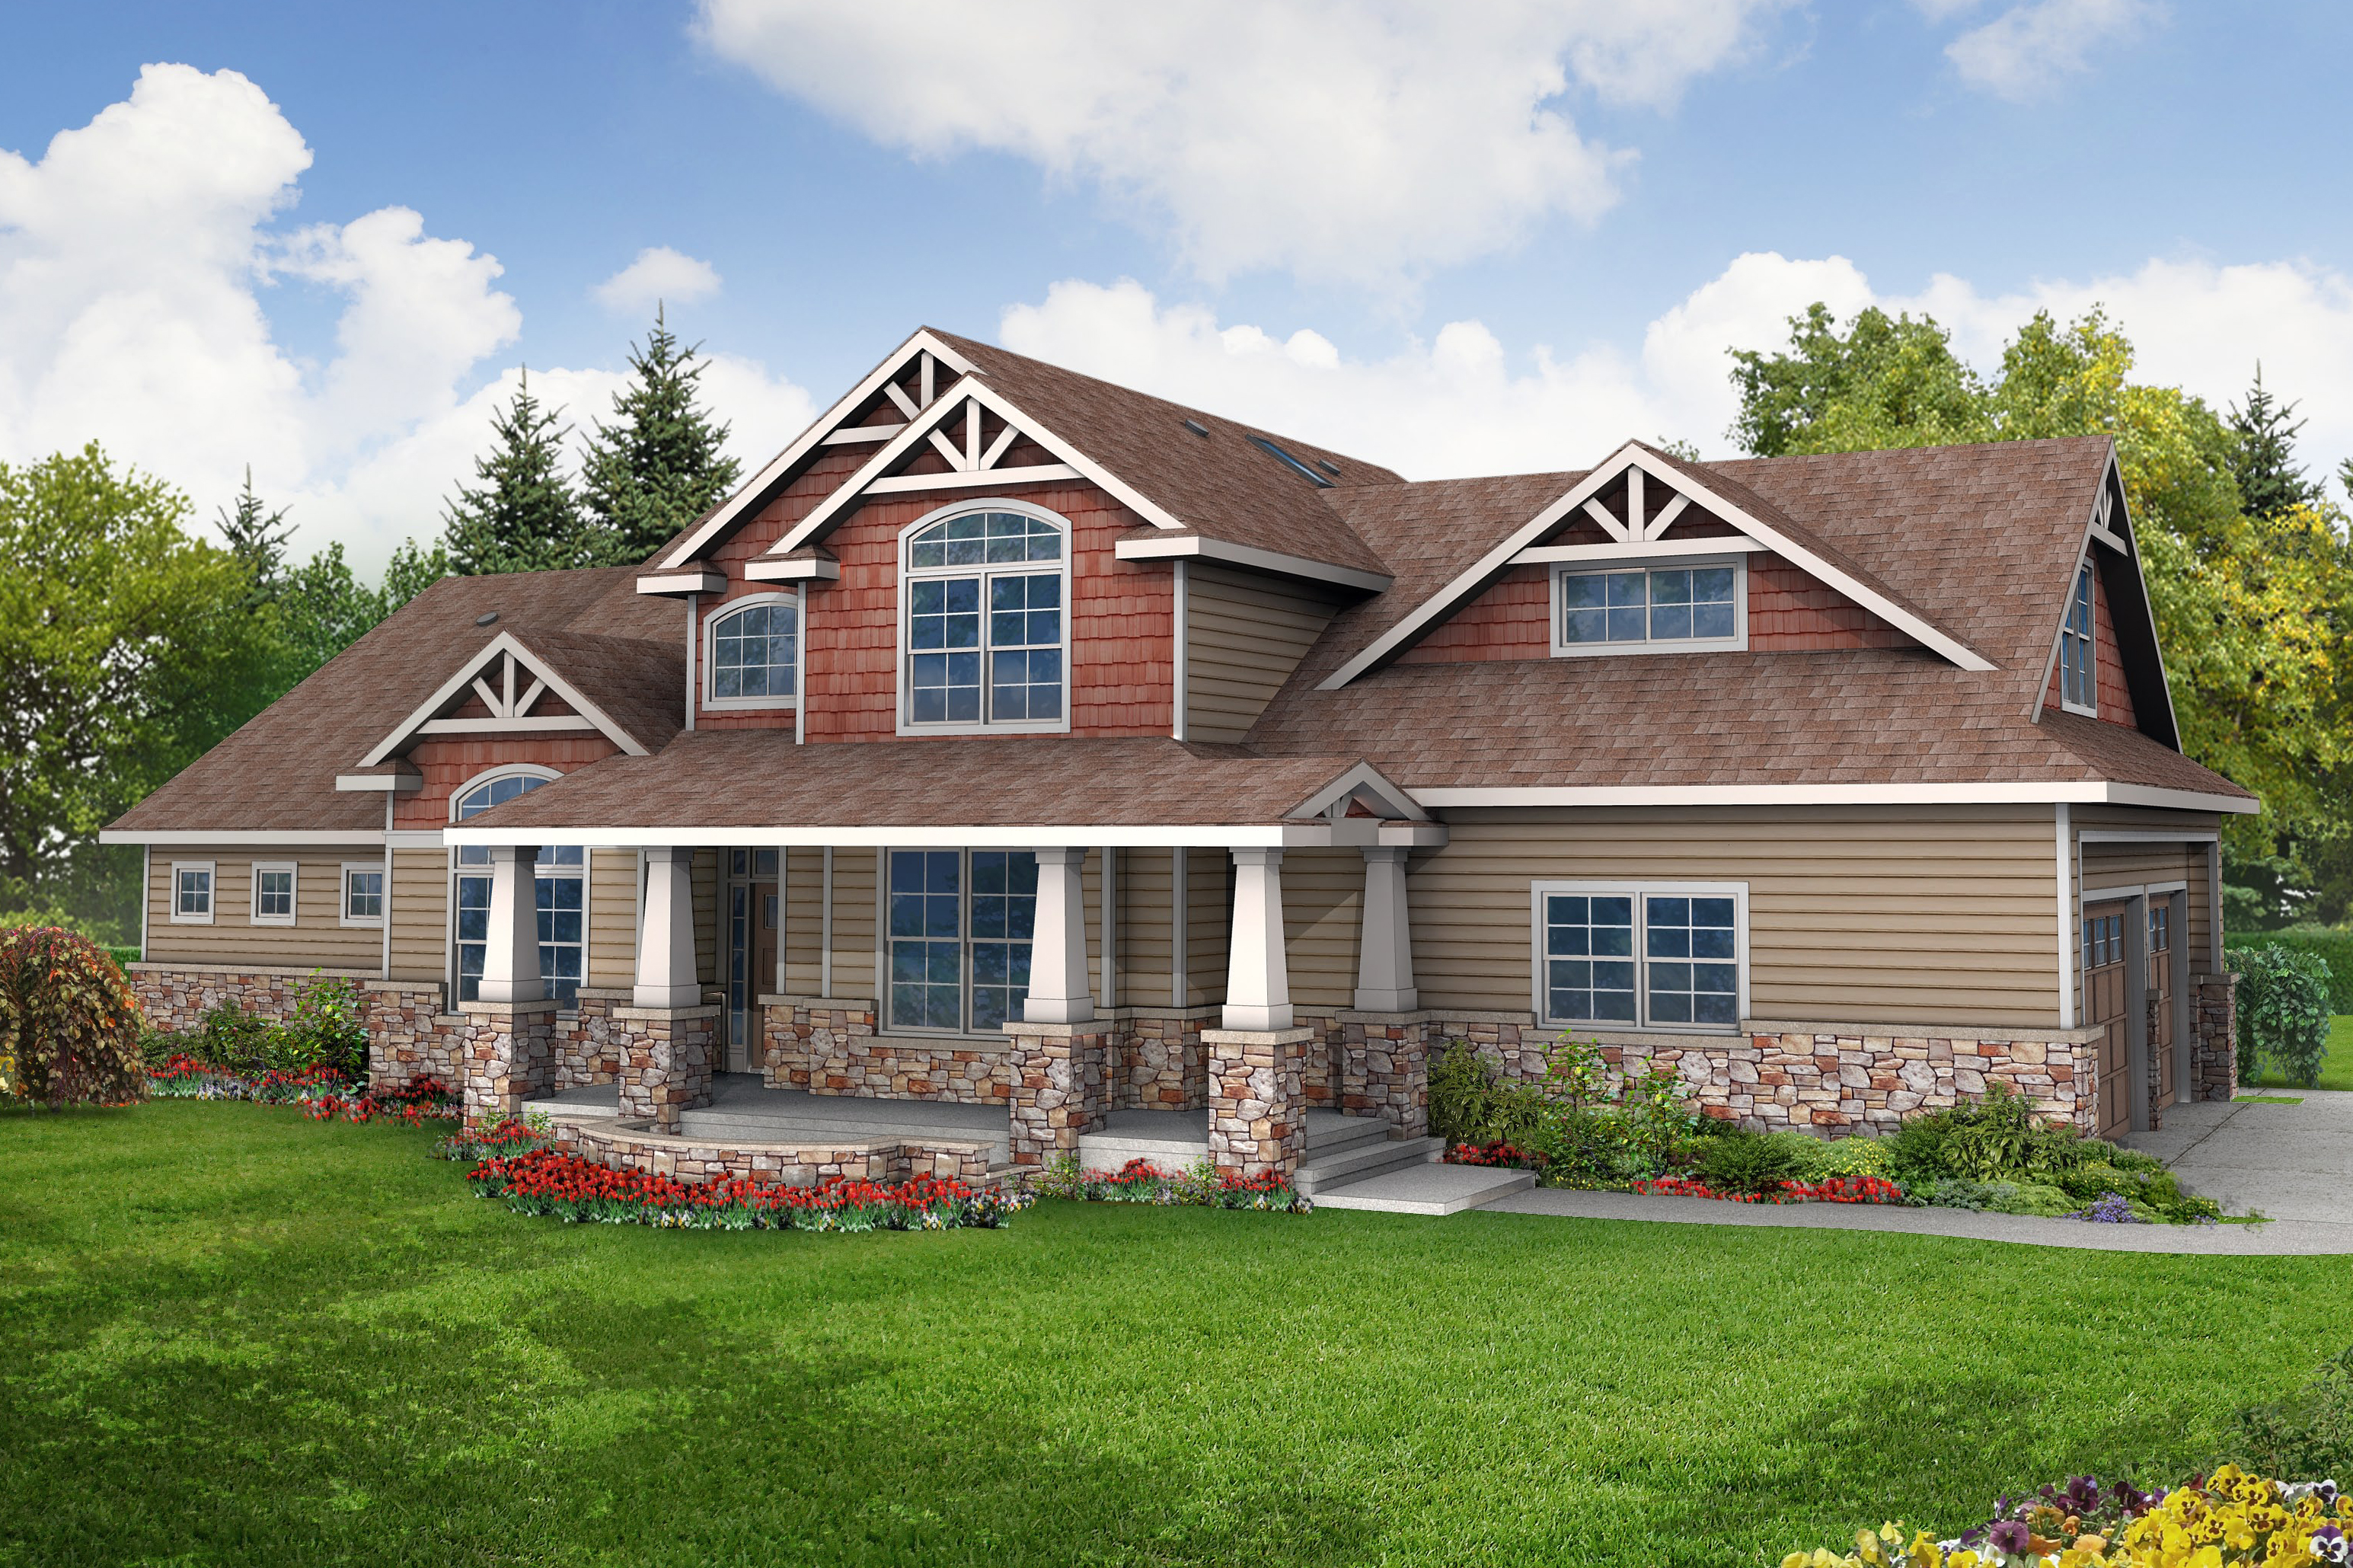 Craftsman house plans craftsman home plans craftsman Craftsmen home